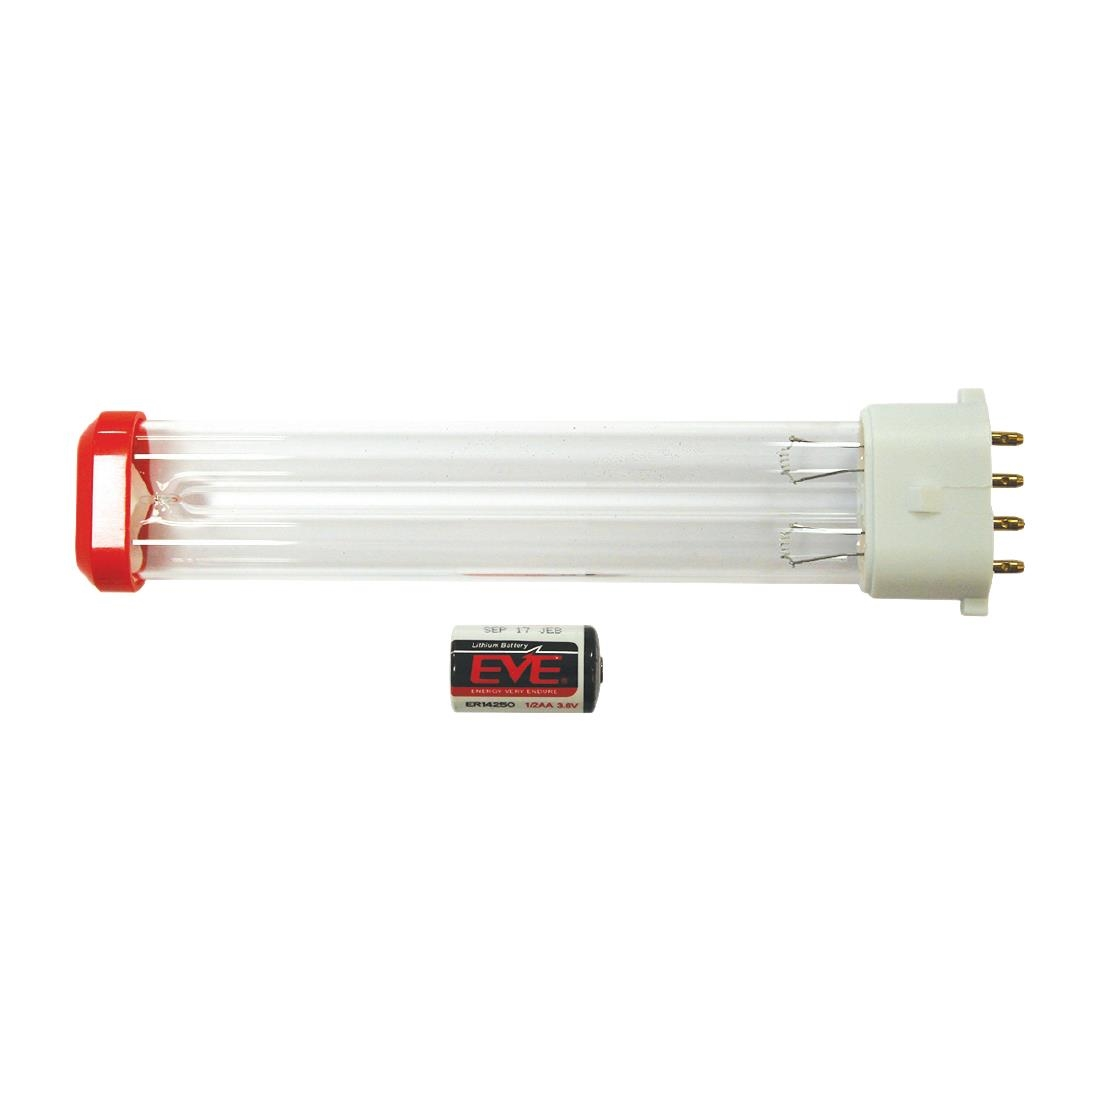 Image of HyGenikx System Replacement Lamp and Battery Red Cap HGX-30-S